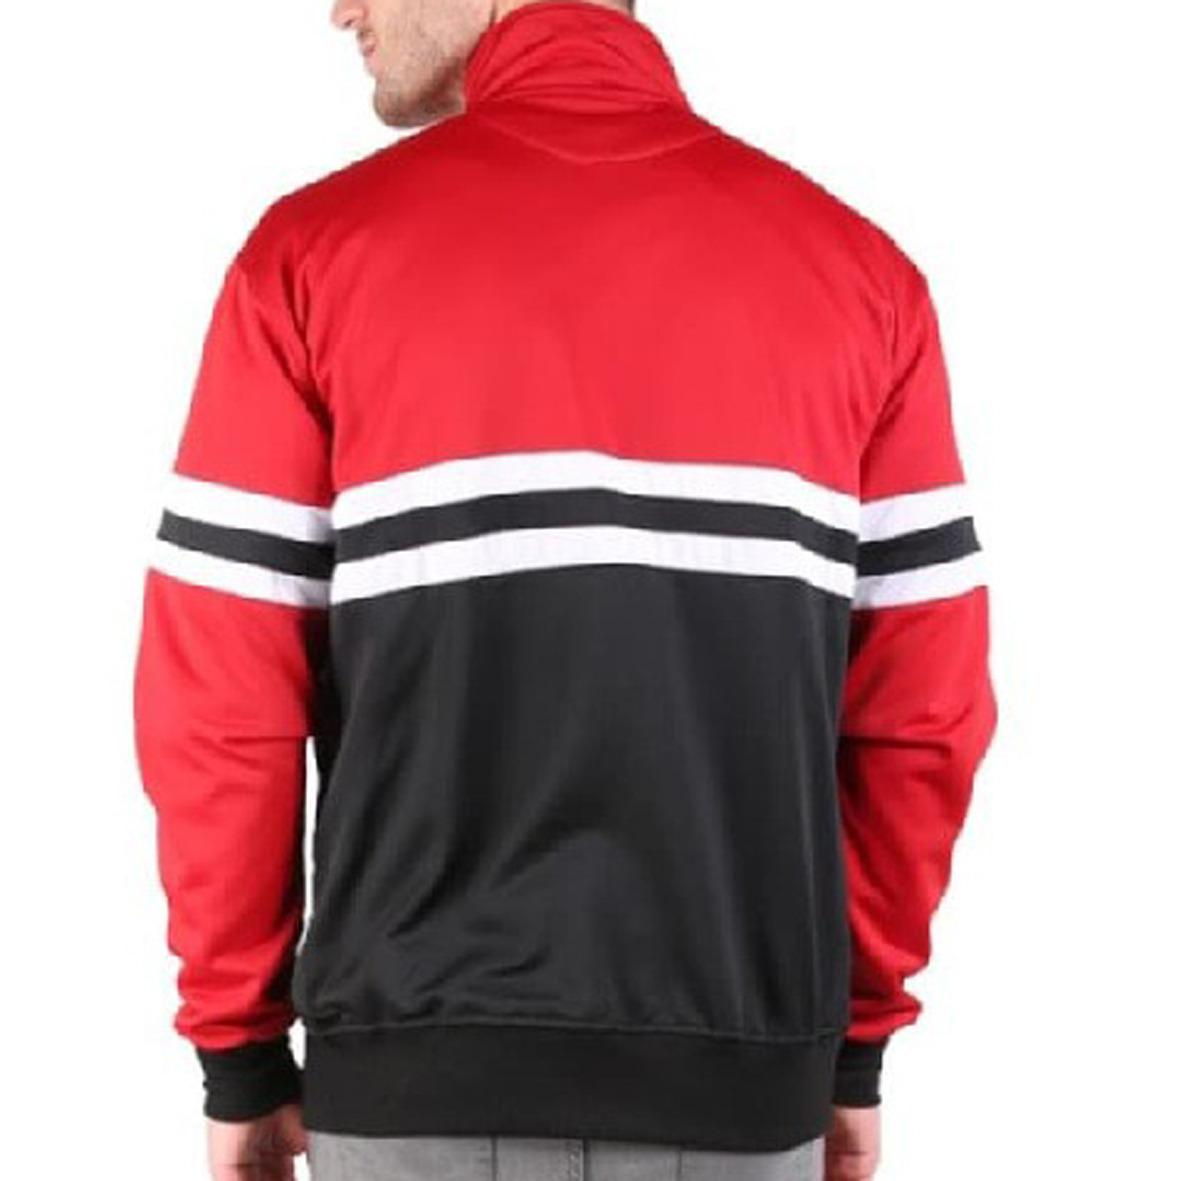 REYJaket Pria Tracktop Casual Ultras Premium Best Seller red black